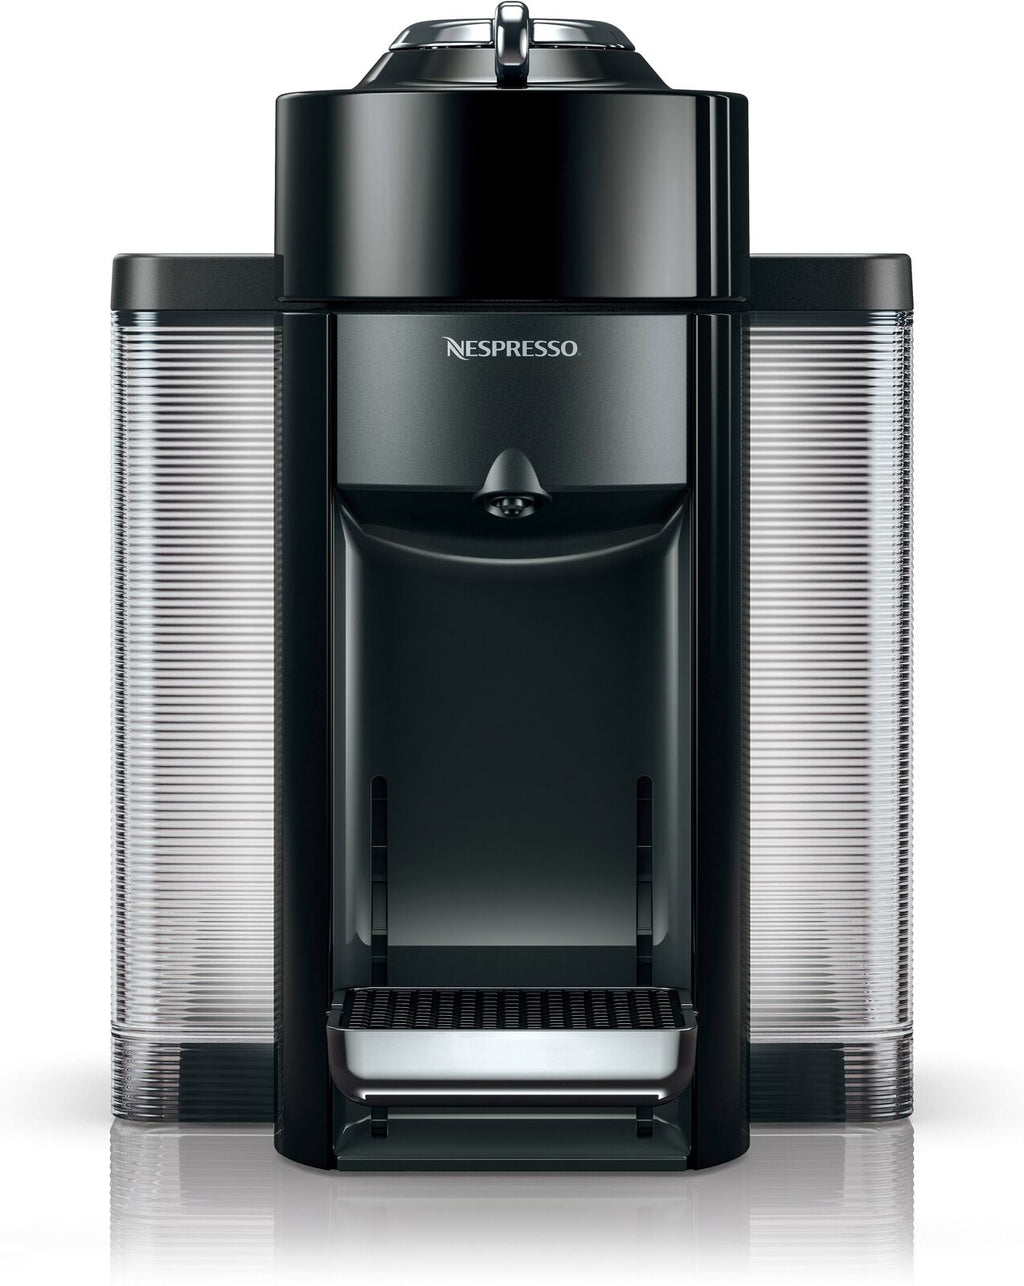 Brand New Nespresso Vertuo Coffee Maker and Espresso Machine - Piano Black ENV135B